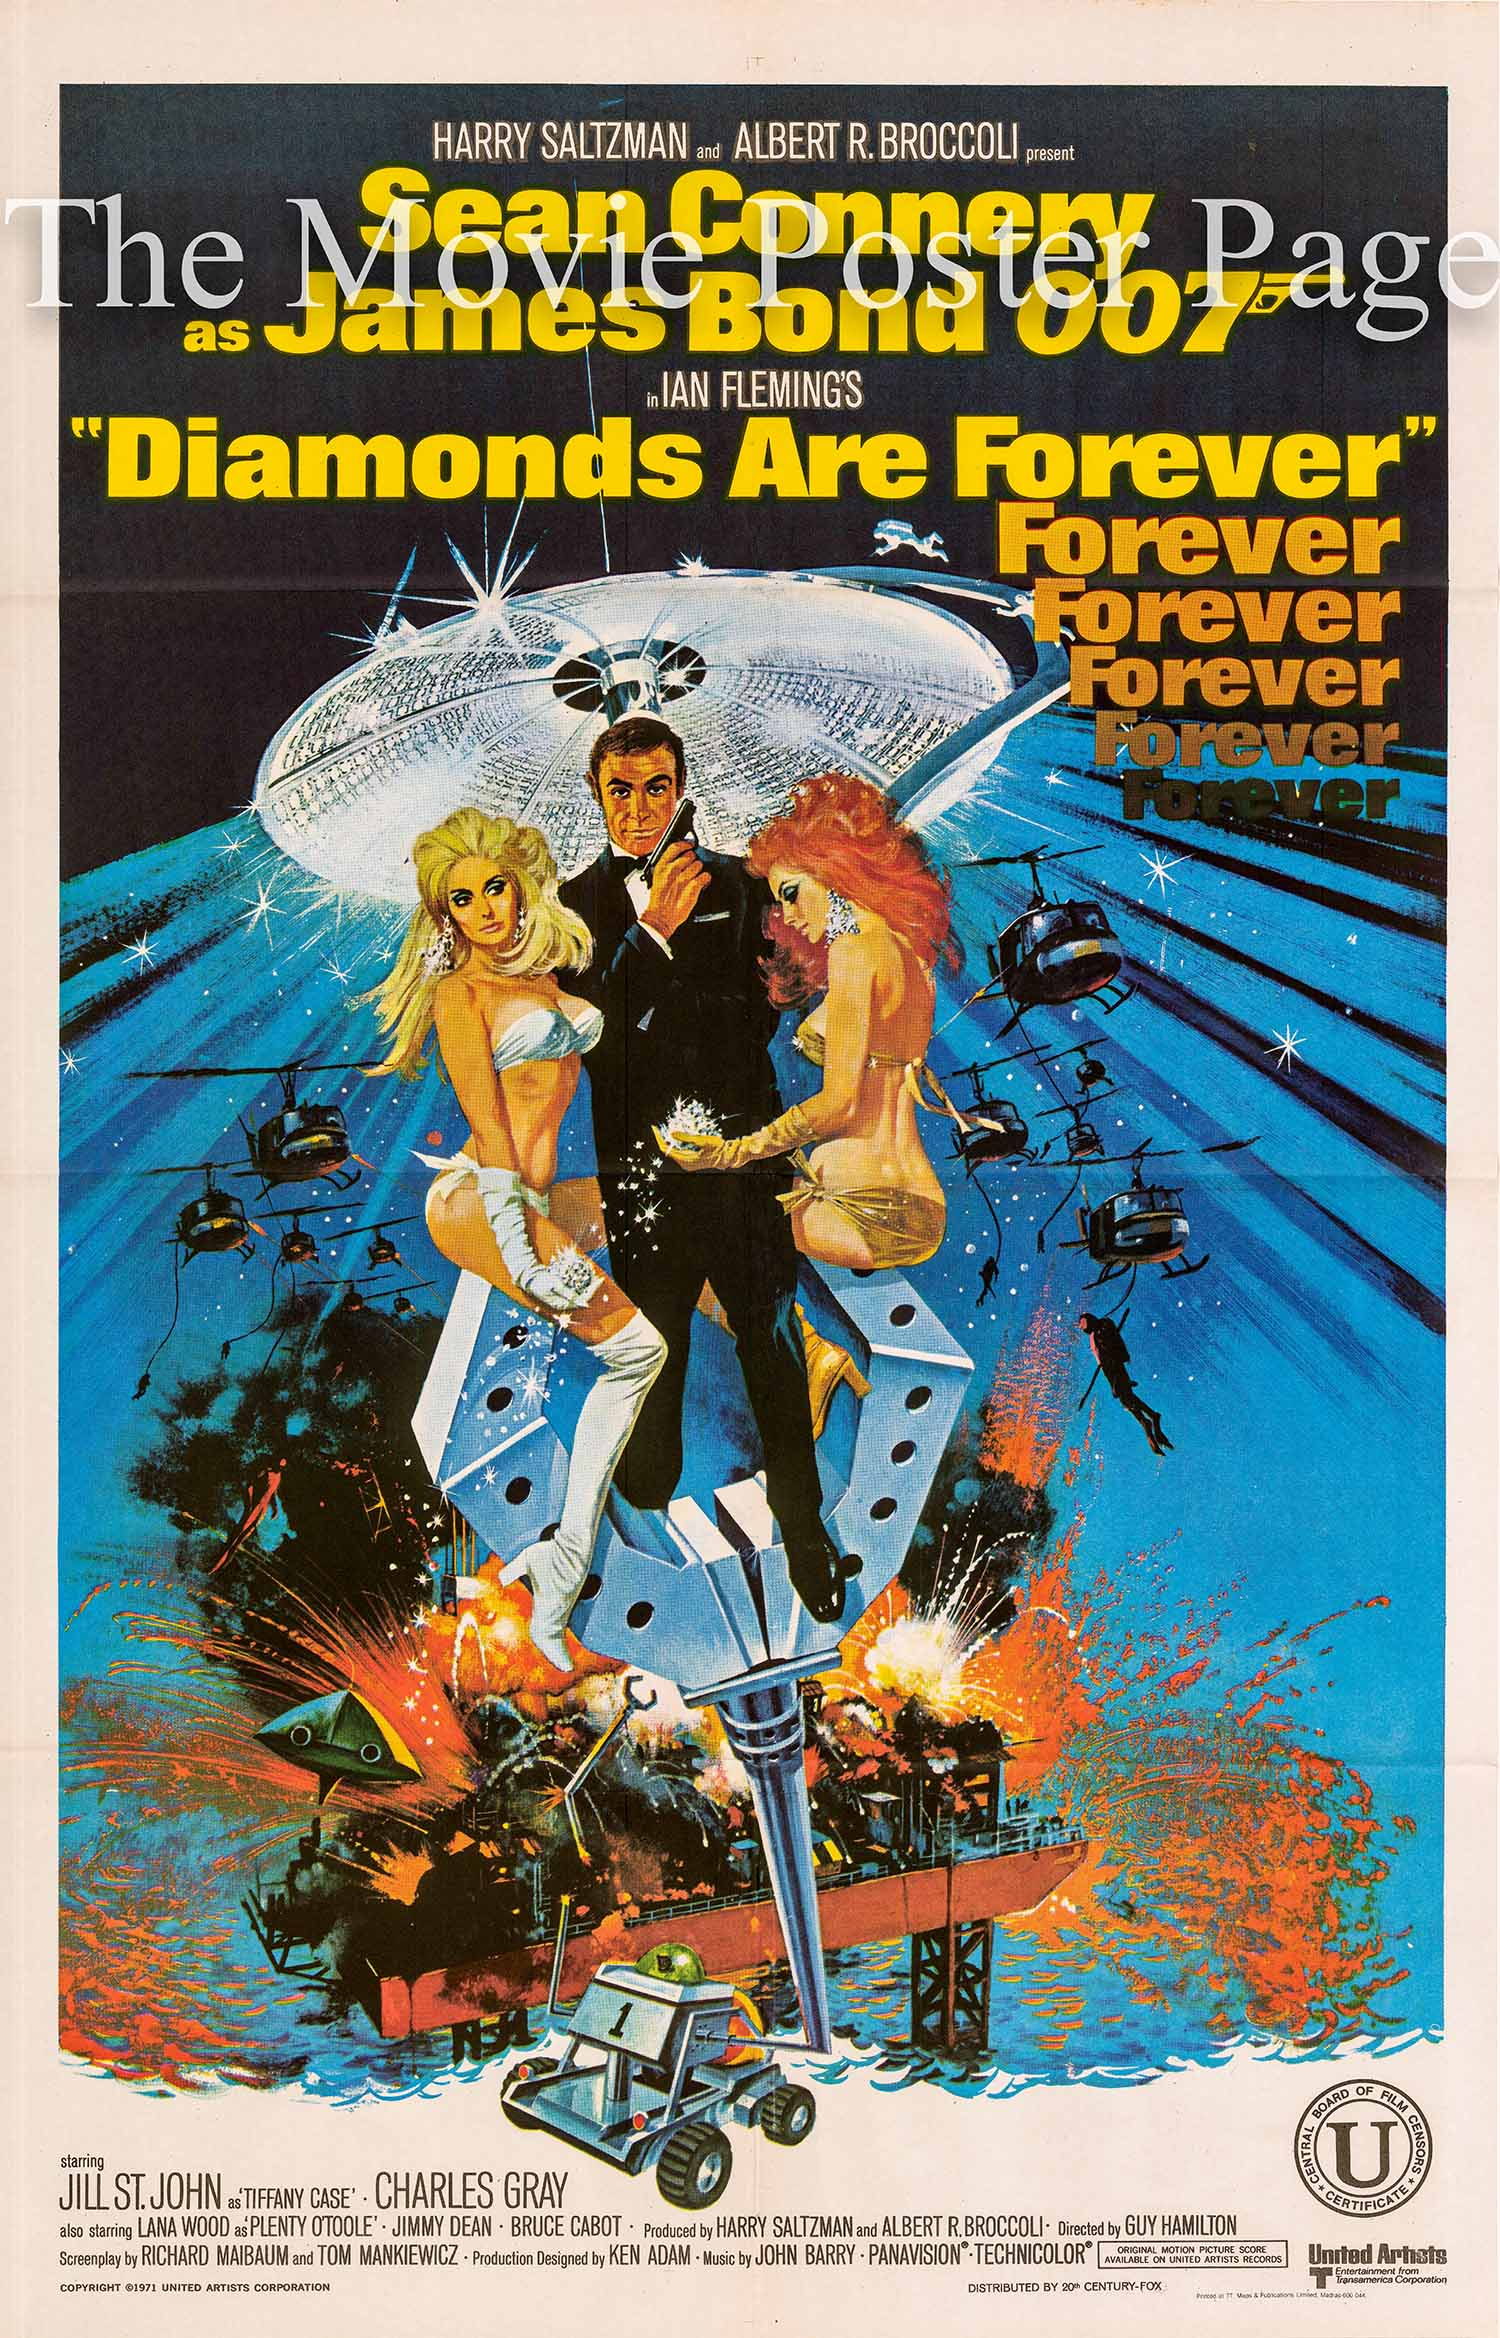 Pictured is an Indian one-sheet based on a Robert McGinnis design made to promote the 1971 Guy Hamilton film Diamonds Are Forever starring Sean Connery as James Bond.